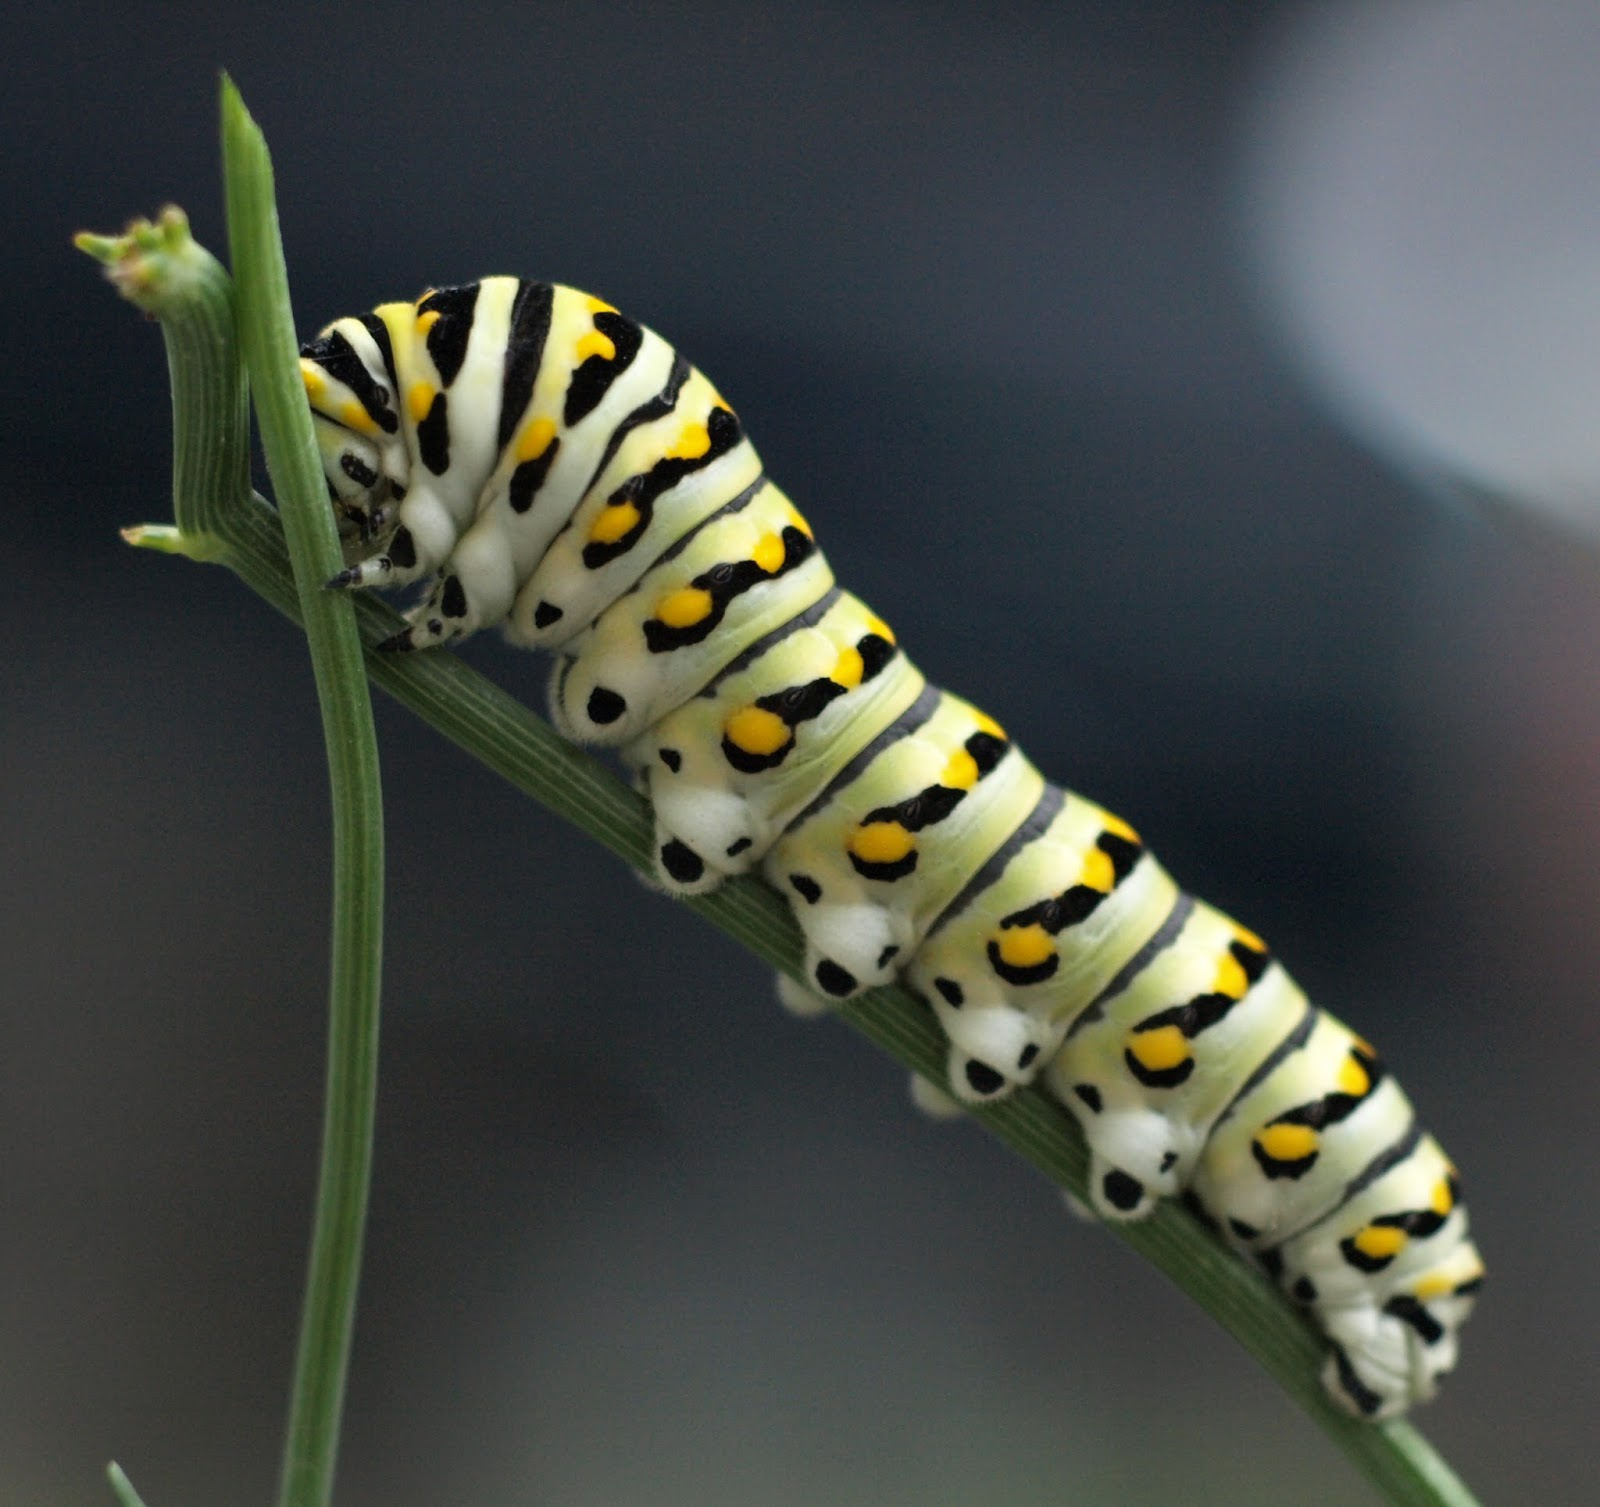 A lime green caterpillar with black stripes and yellow dots eating a plant